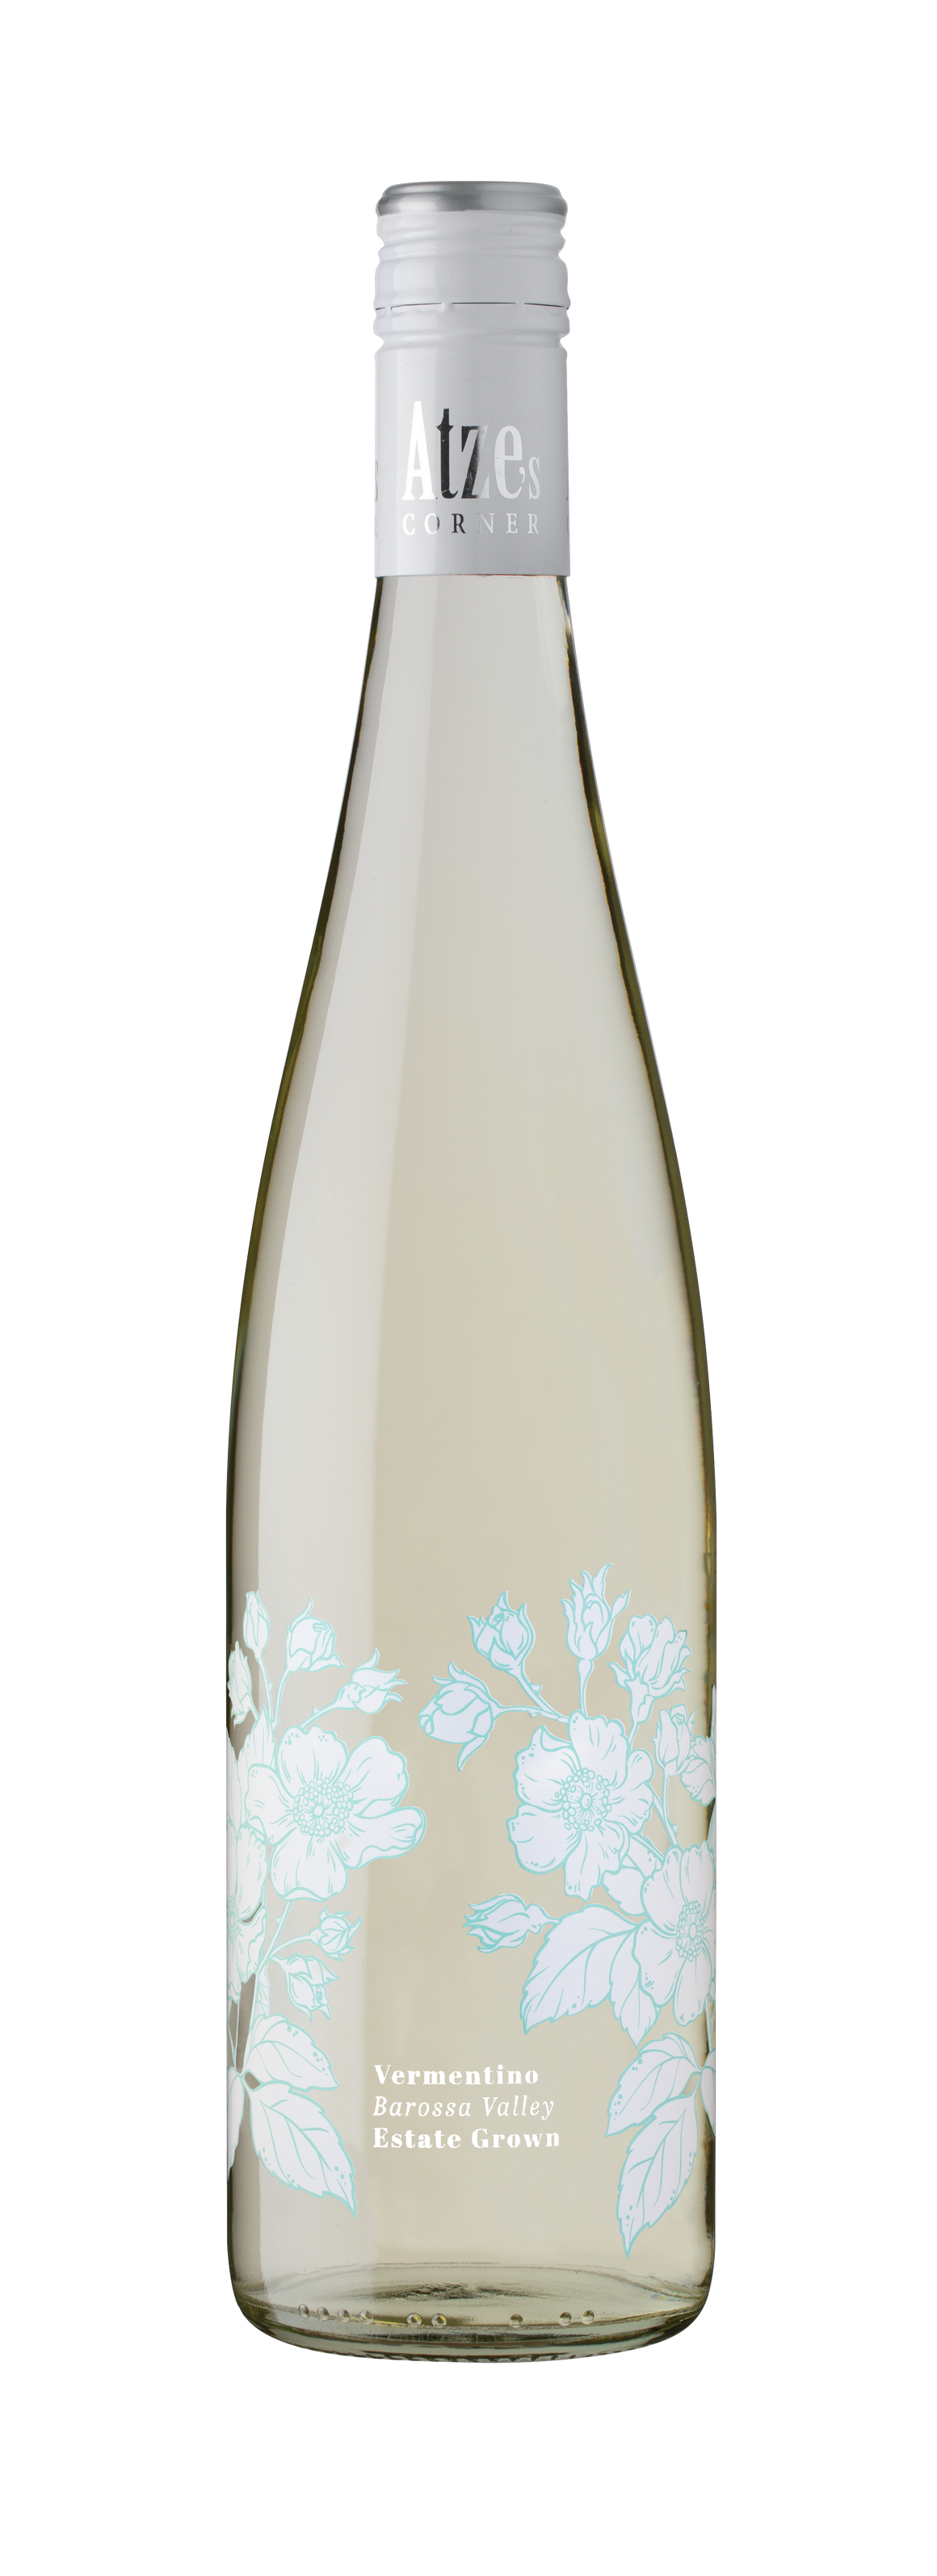 Wild Rose 2020 Vermentino White Wine